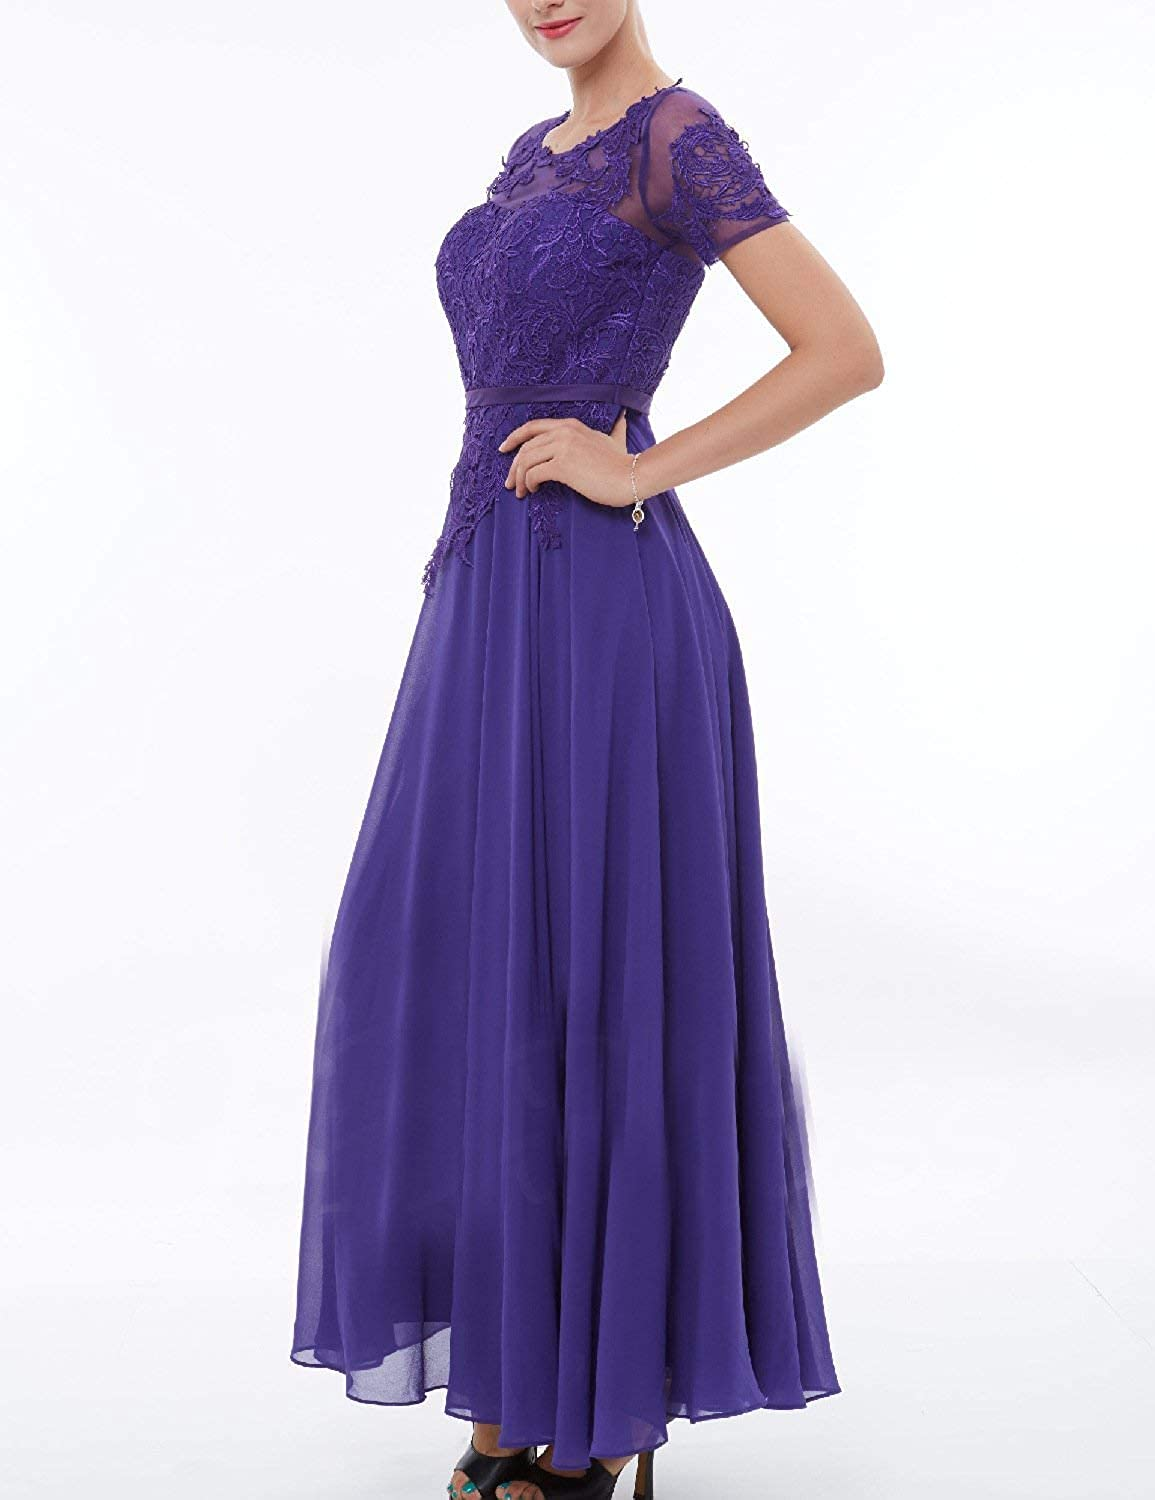 MKbridal Womens Chiffon Lace Tea Length Mother of The Bride Dress Short Sleeves Cocktail Party Gowns